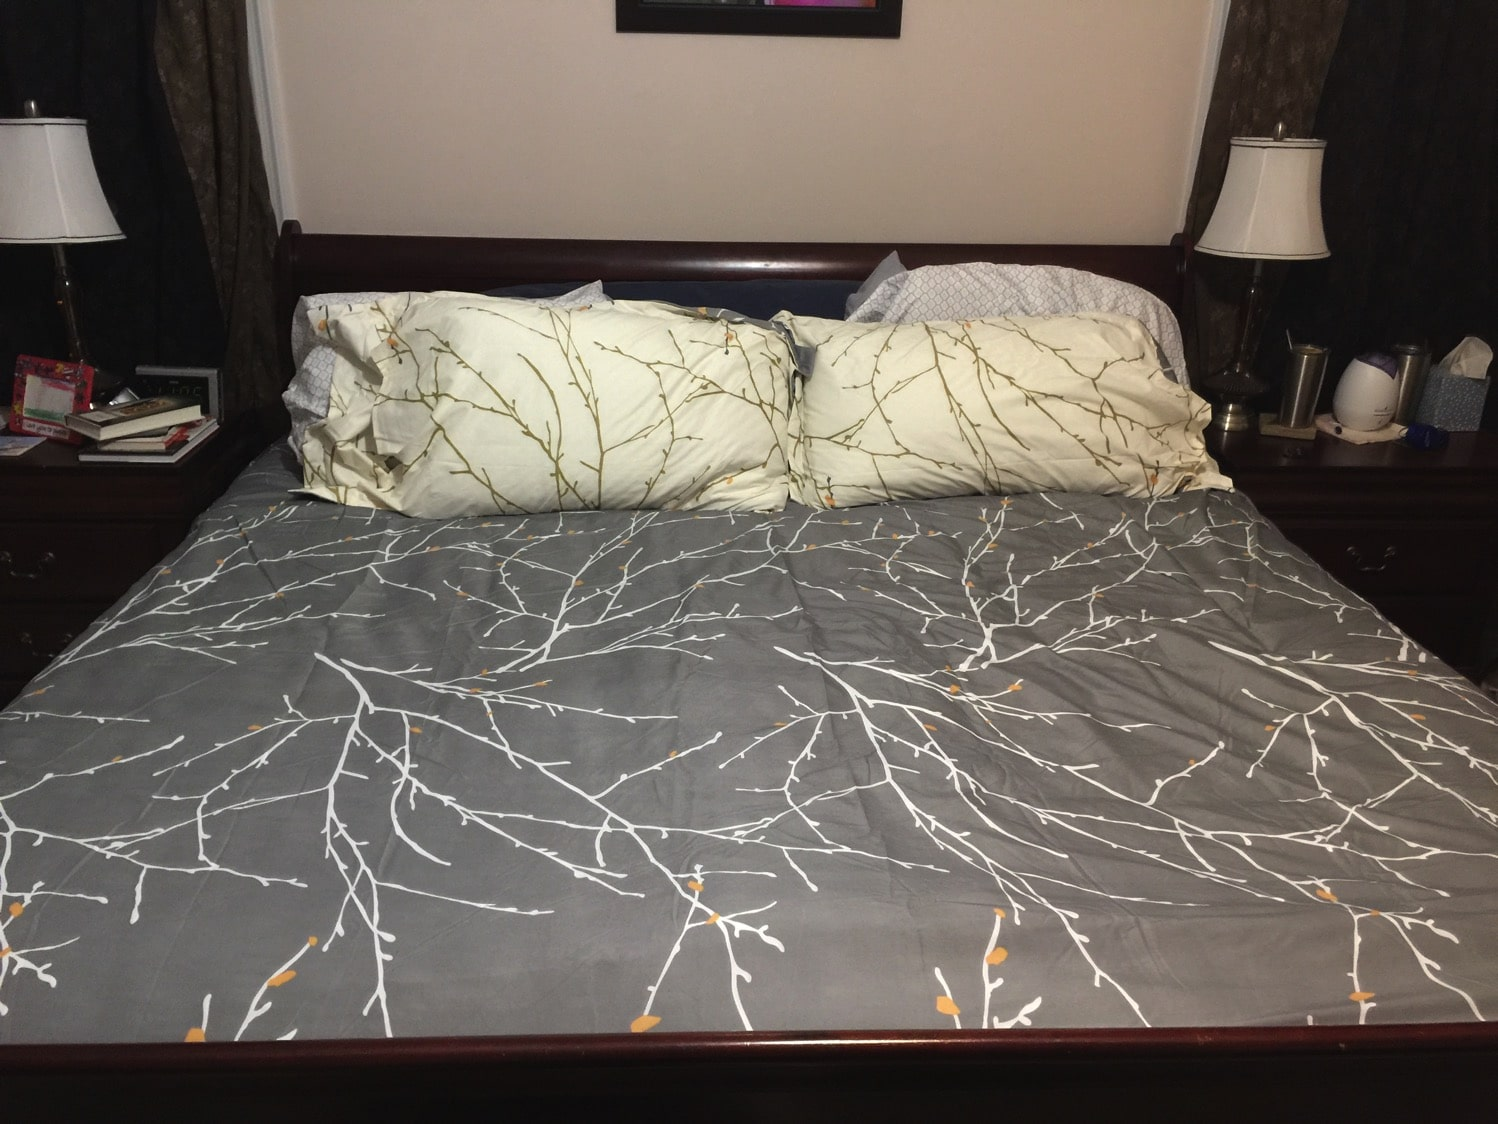 nectar mattress with bed made